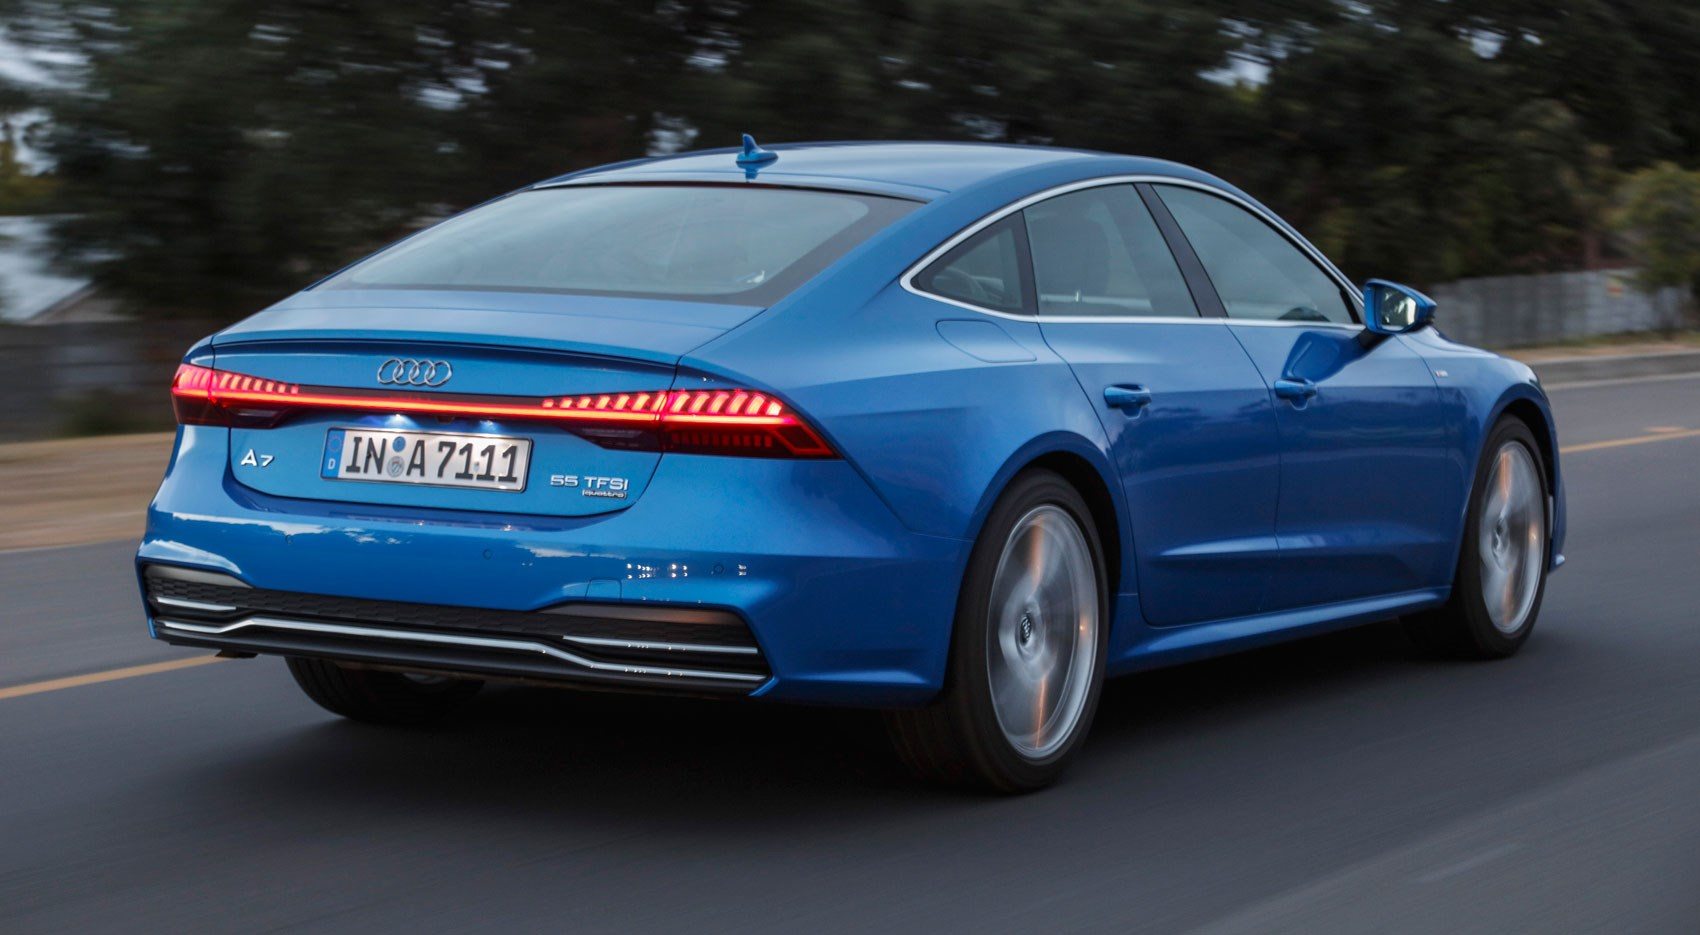 2018 Audi A7 >> New Audi A7 2018 Review The Sleek Exec Driven Car Magazine